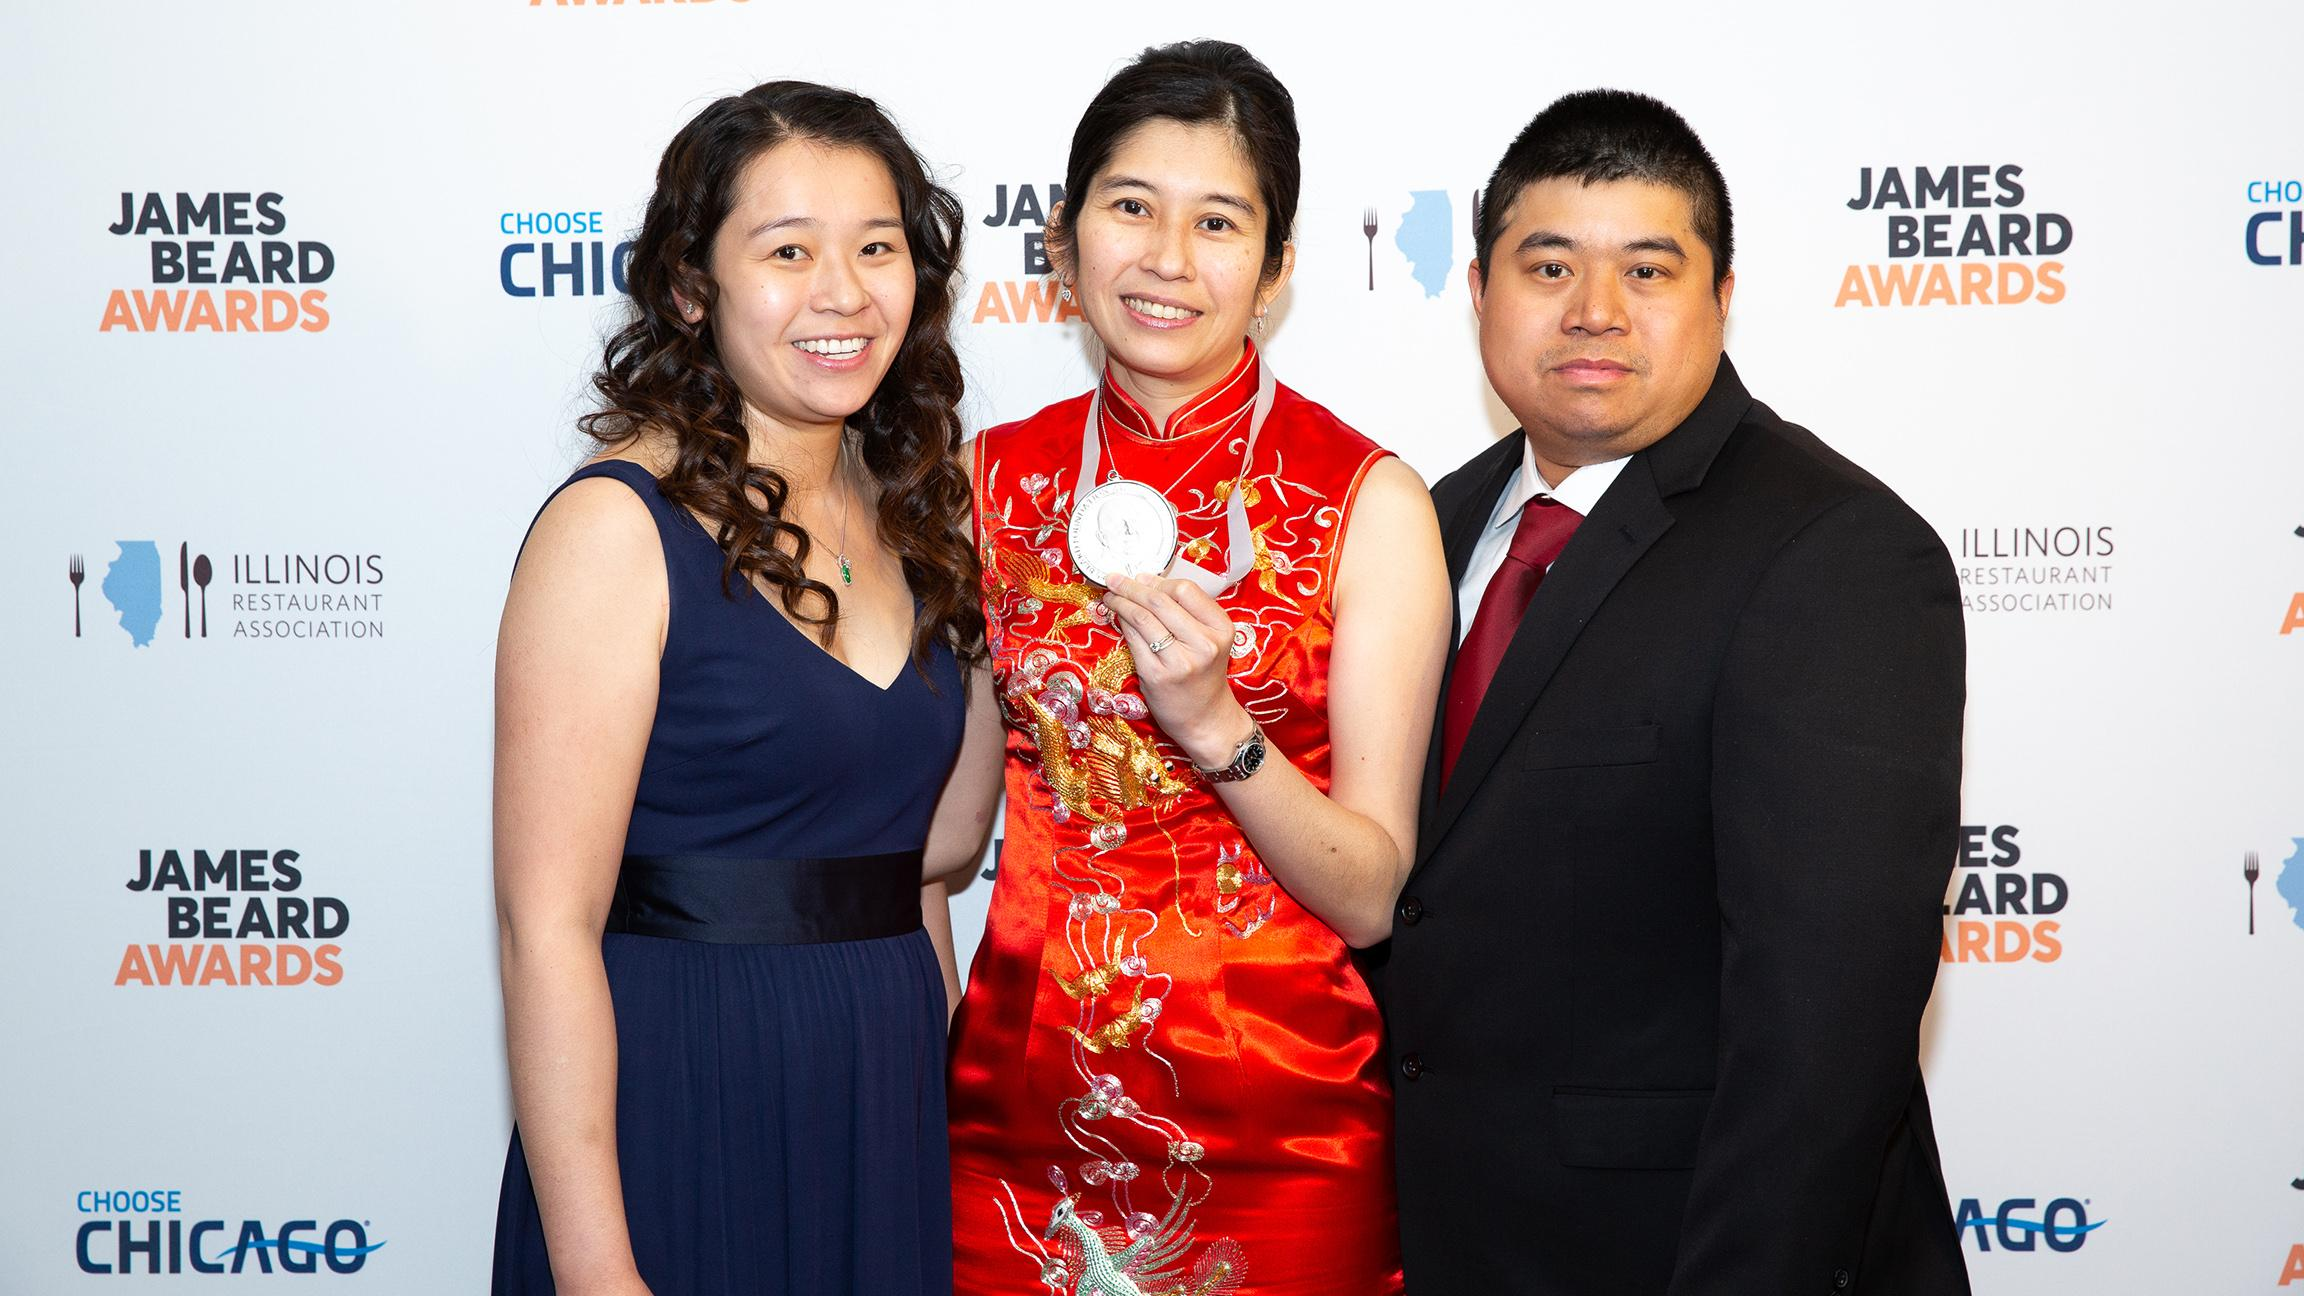 The Cheng family: Laura, left, Kelly and Michael. (Courtesy James Beard Foundation)